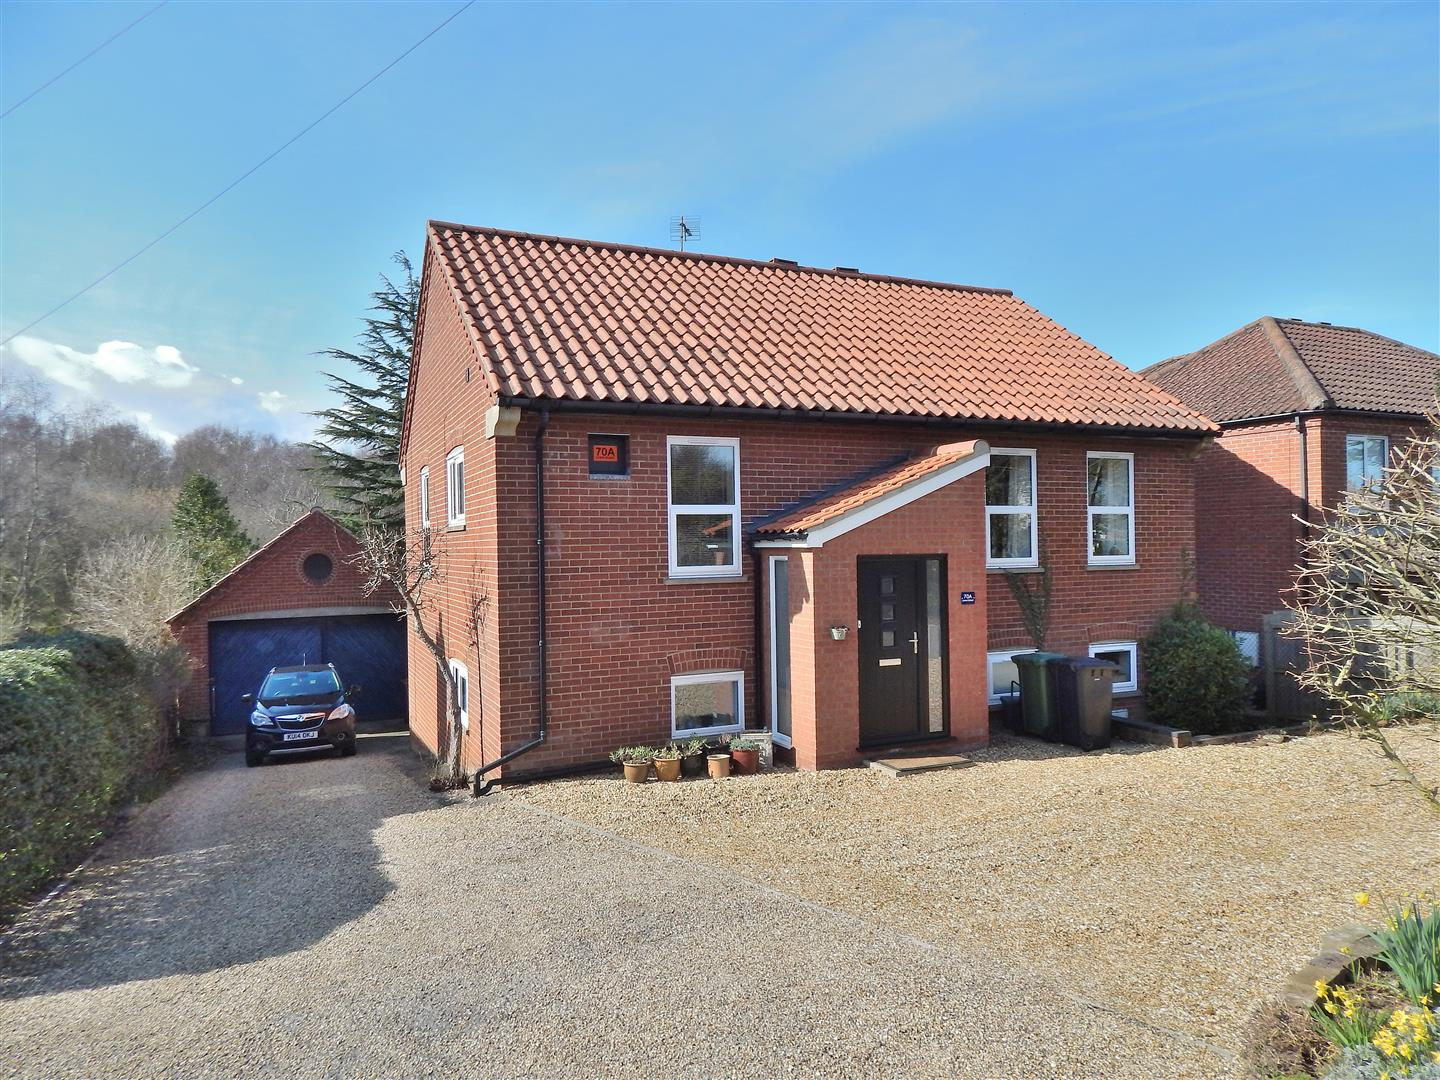 4 bed detached house for sale in Lynn Road, King's Lynn  - Property Image 1